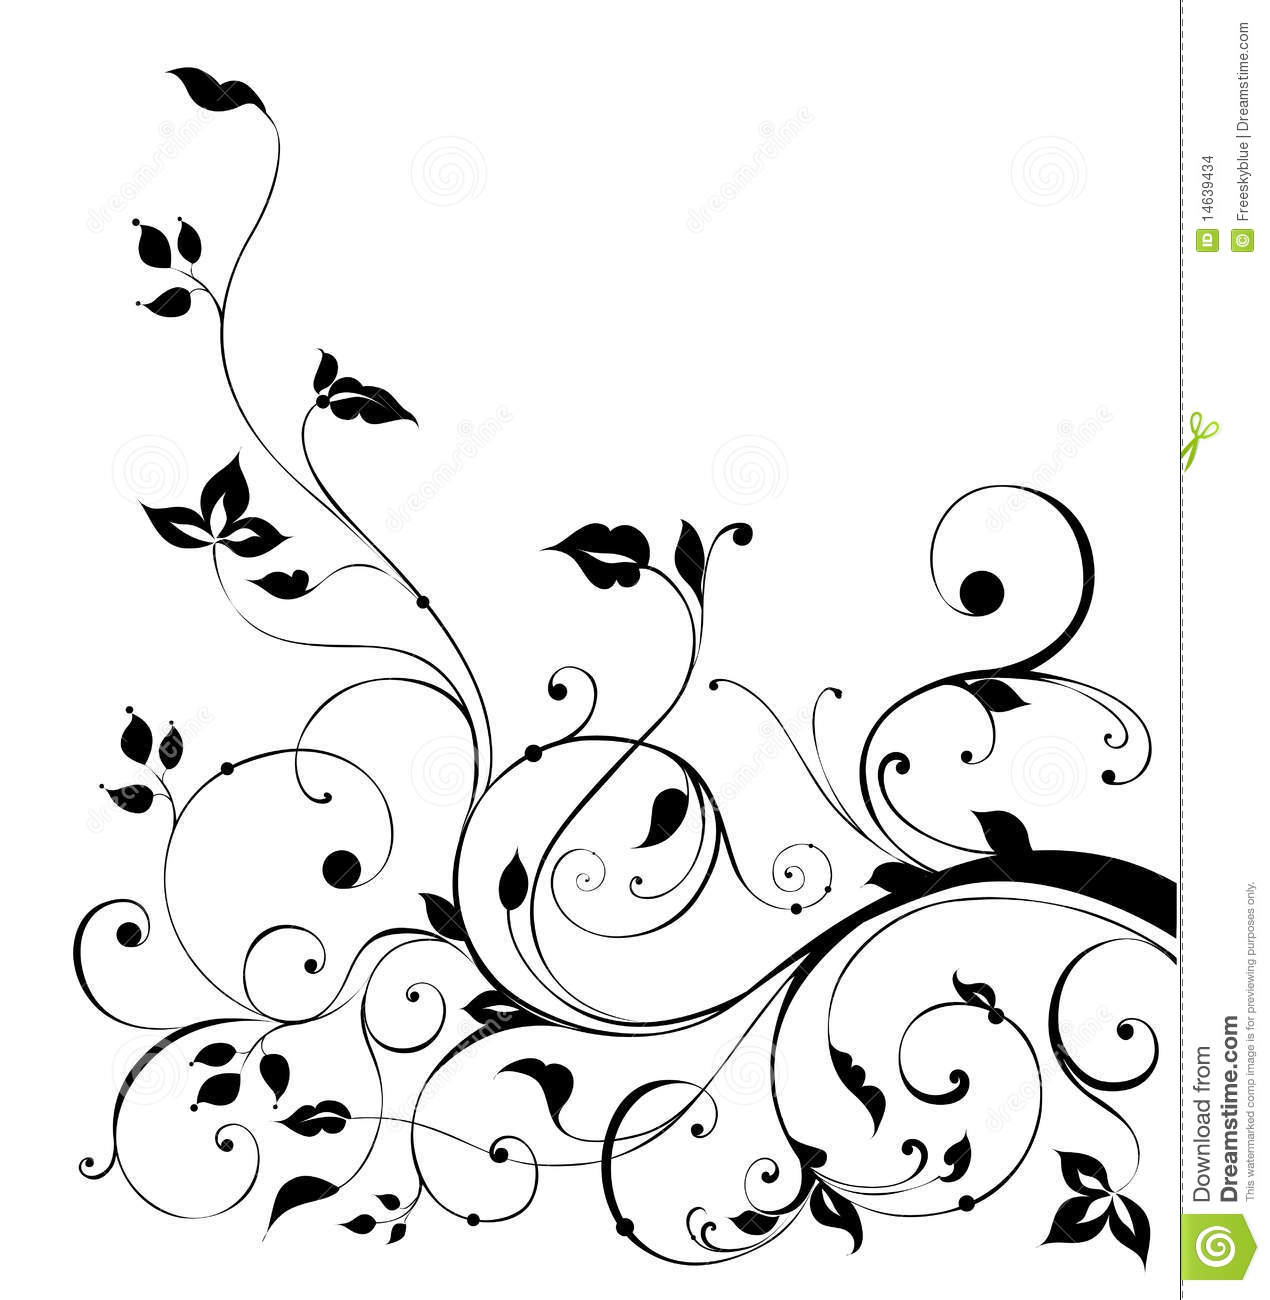 Black Flower Pattern Stock Images: Black Flower And Vines Pattern Stock Illustration